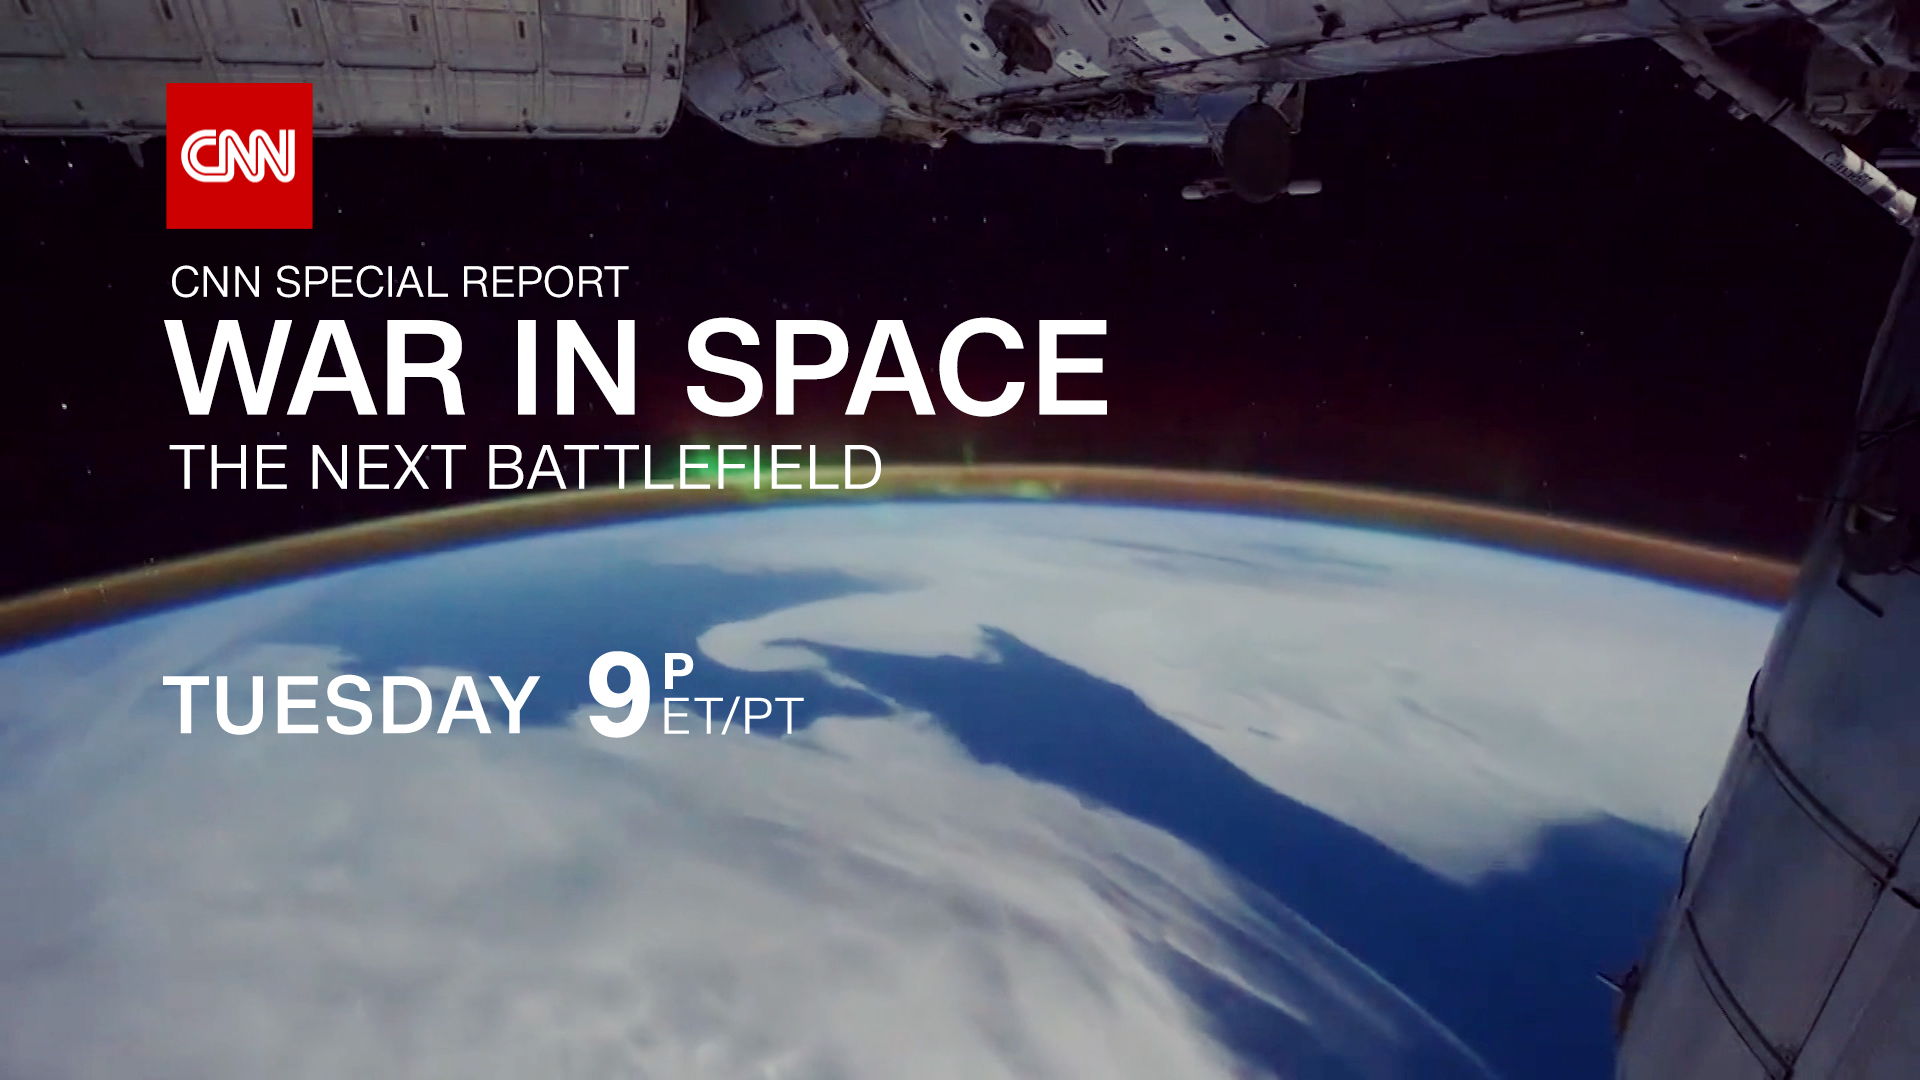 CNN to Premiere War in Space: The Next Battlefield at 9 p.m. on Nov. 29